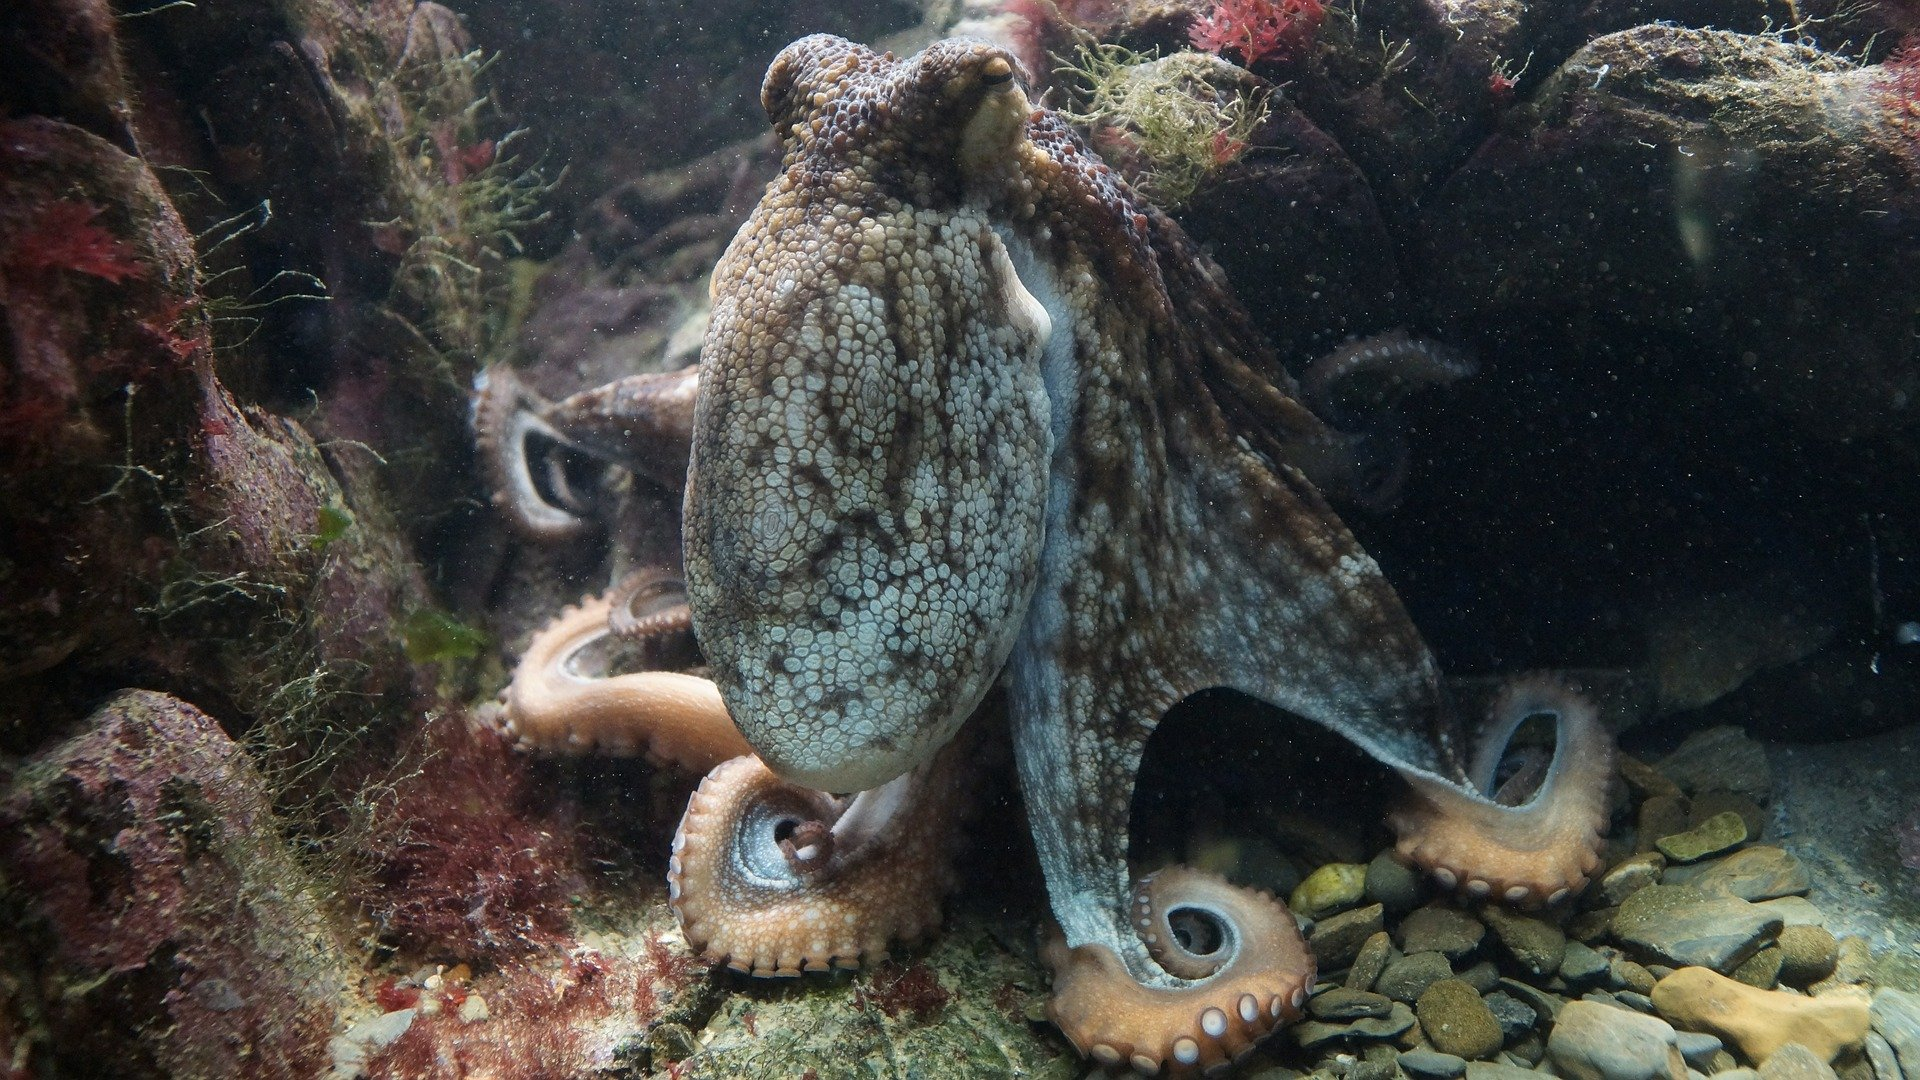 No nerves lost: Octopuses can regenerate their nervous system.